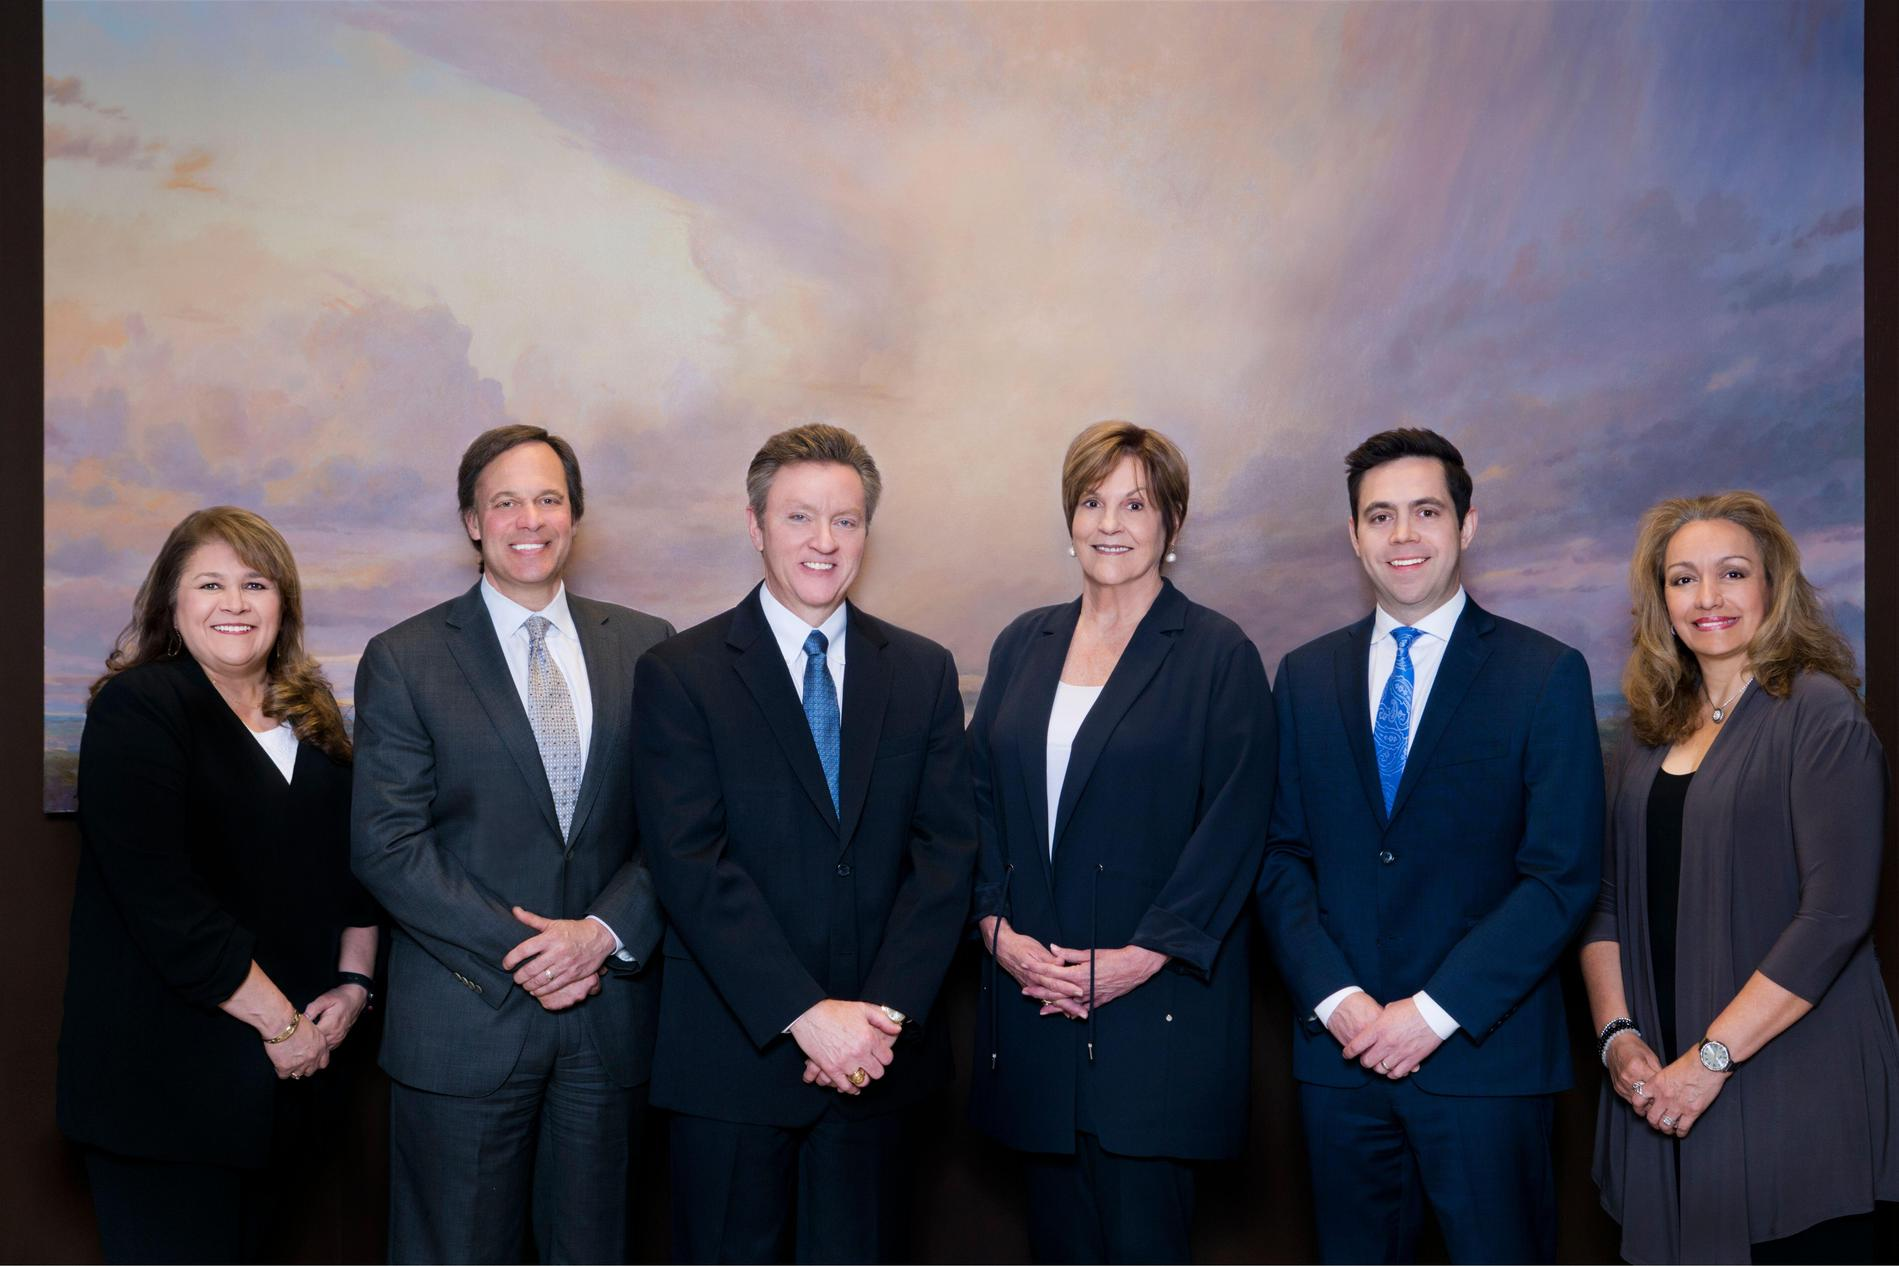 Photo of The JK Group - Morgan Stanley